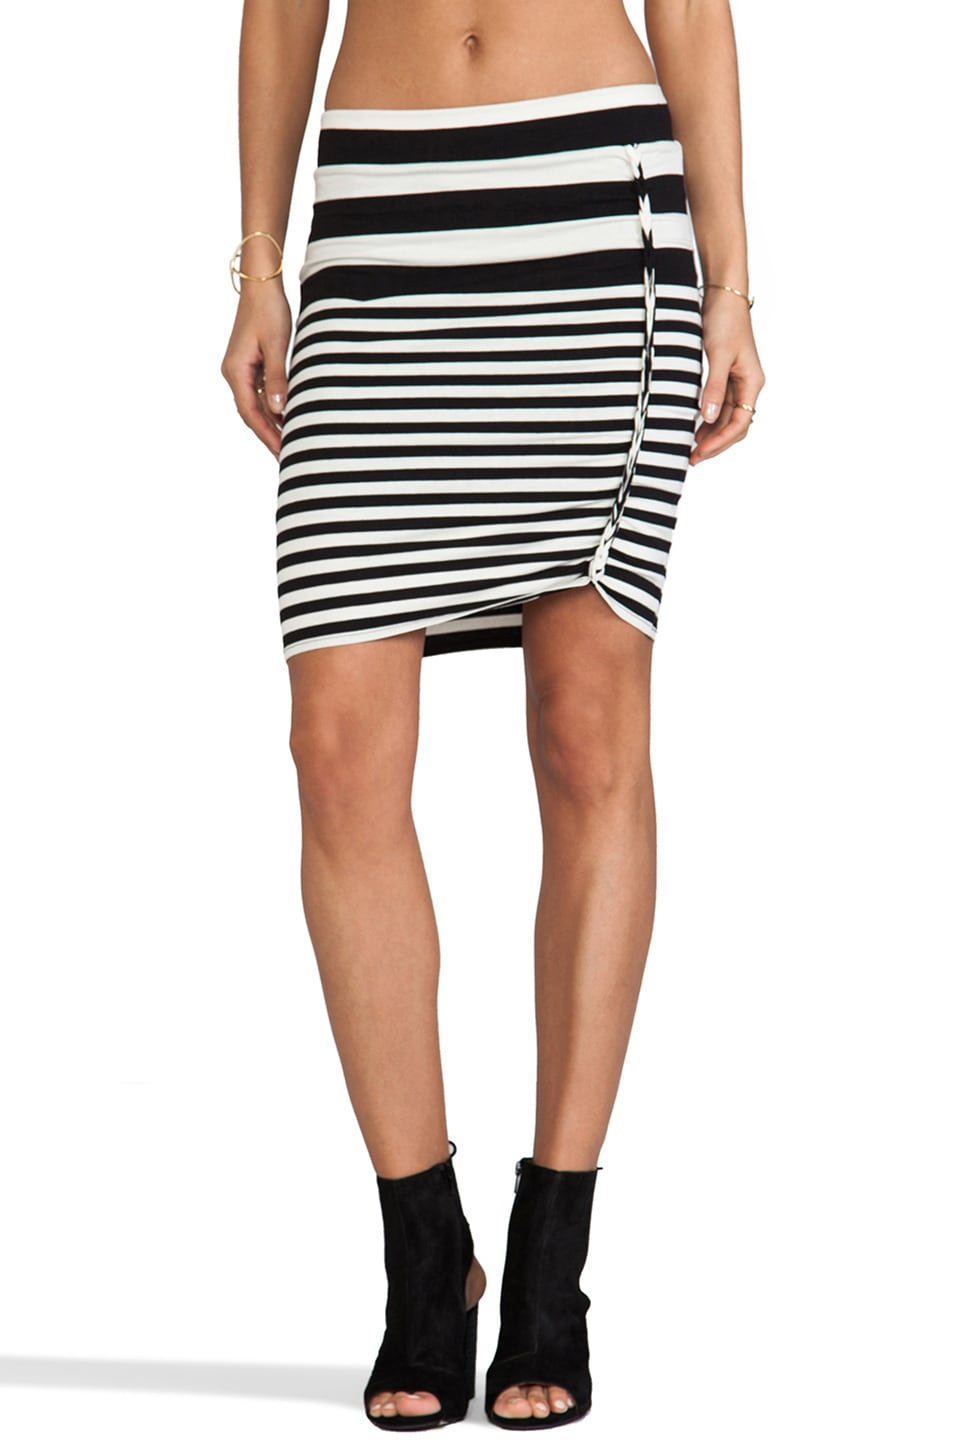 Free People Stripe Lots O Knots Skirt in Black Combo